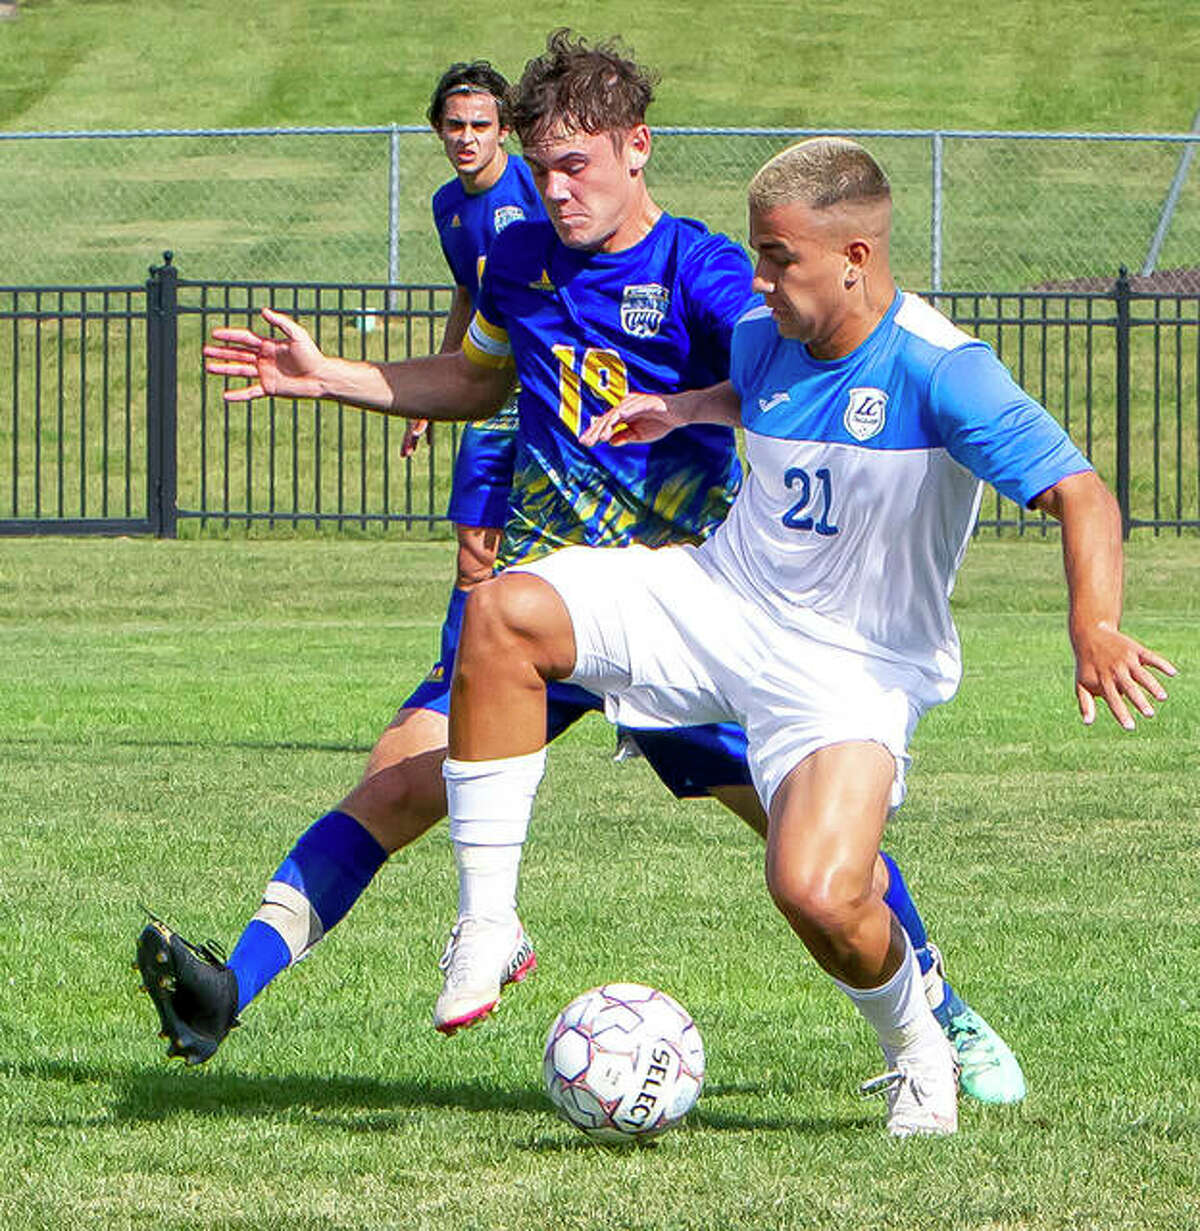 Lewis and Clark Community College's Dudu Rodrigues (21) battles for the ball with Logan Cupi of Illinois Central College Sunday at LCCC's Tim Rooney Stadium.